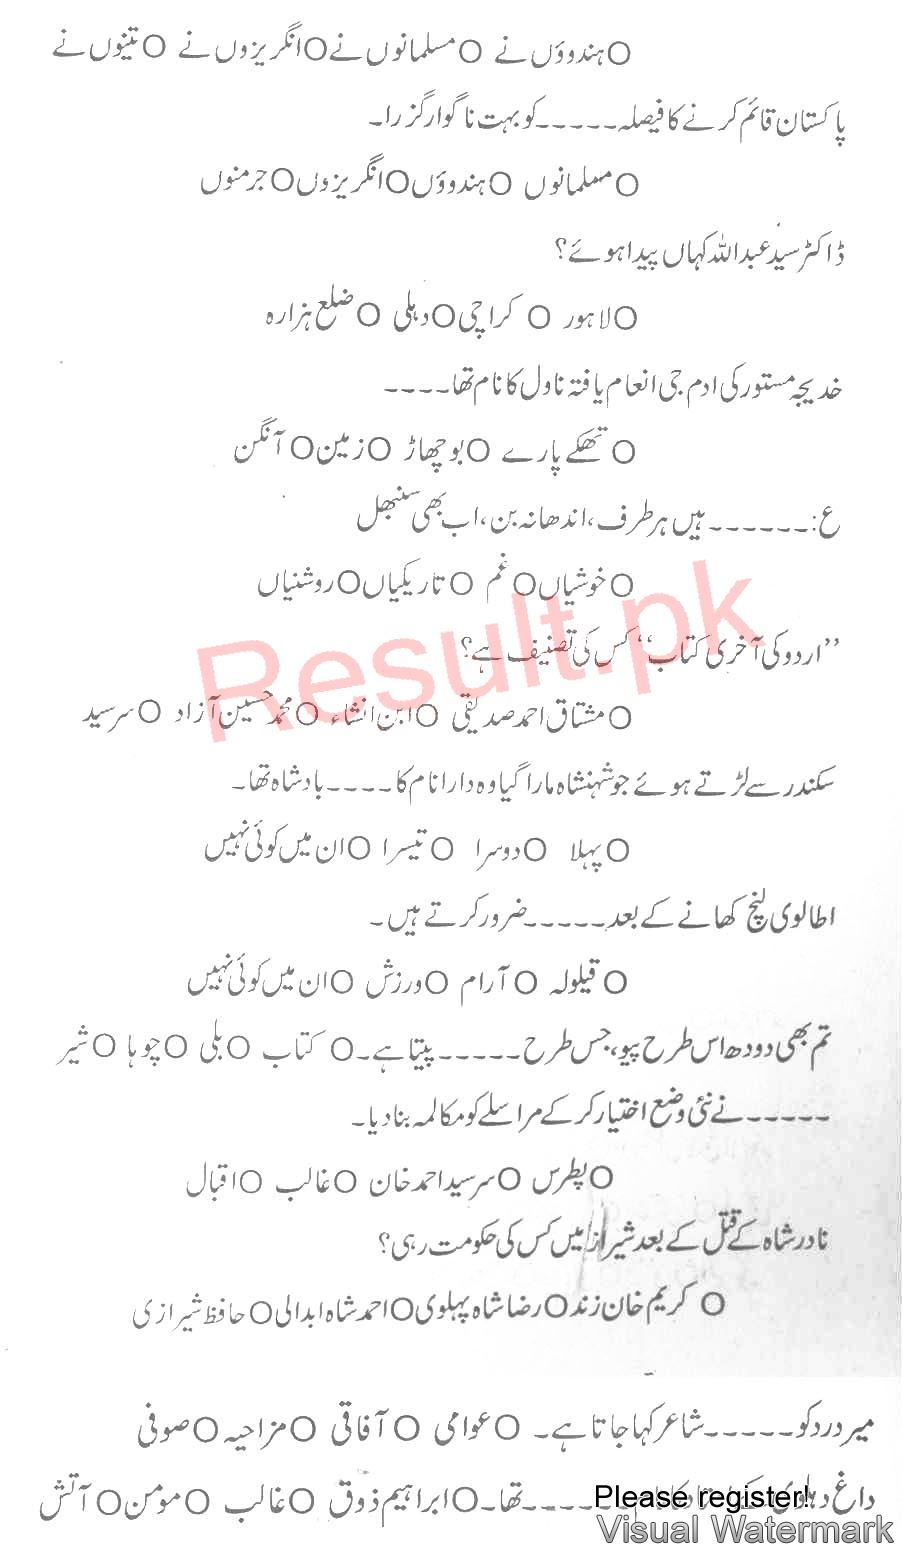 BISE Bannu Board Past Papers 2019 Inter Part 1 2, FA, HSSC